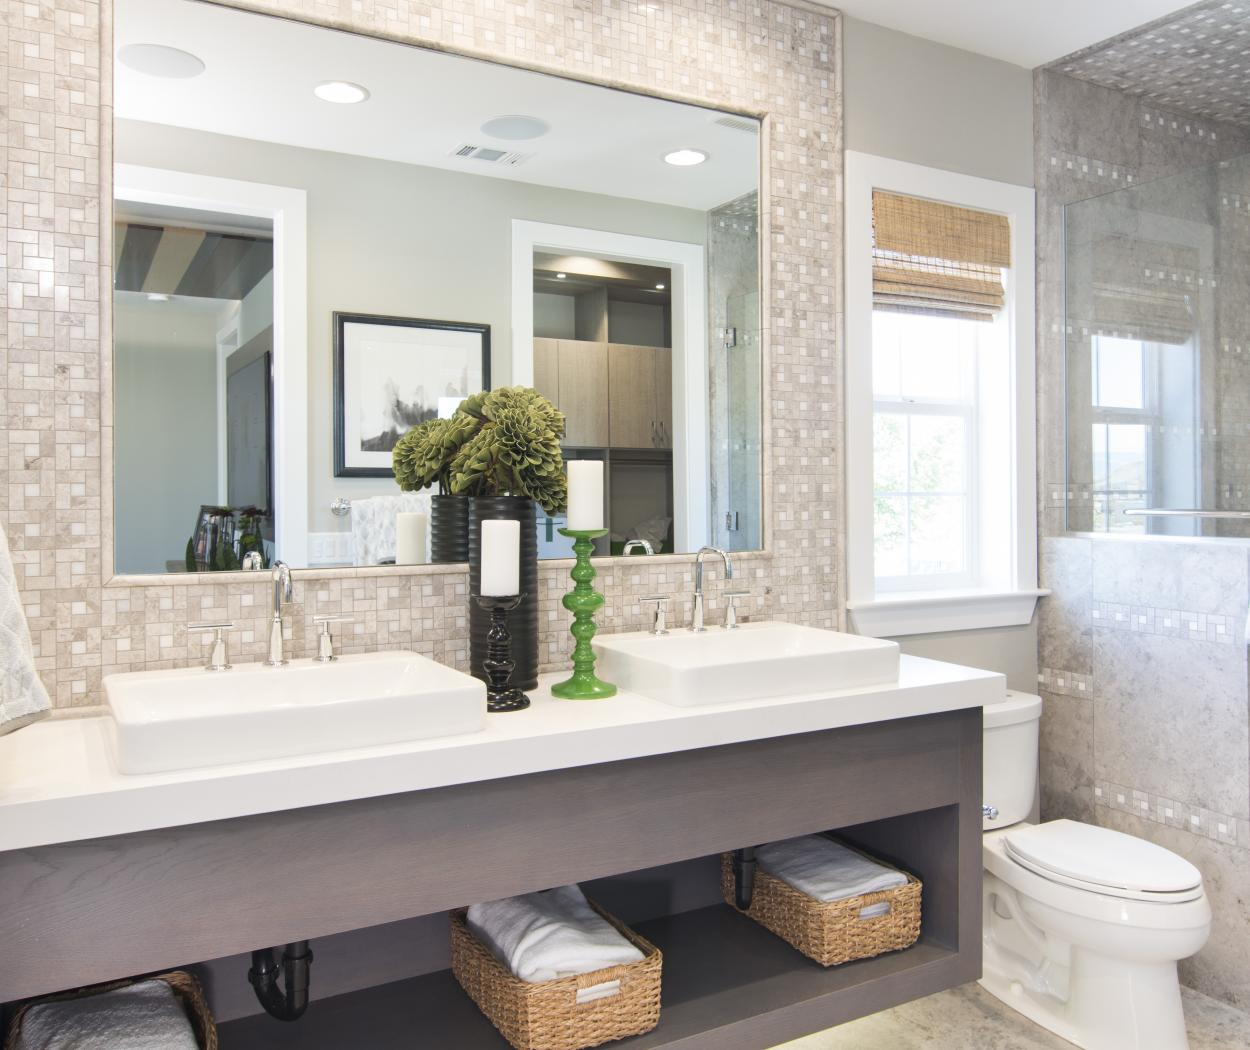 Master Bathroom Vanity Built in Reclaimed Wood with a Beautiful White Counter Top, Double Sinks and Silver Faucets